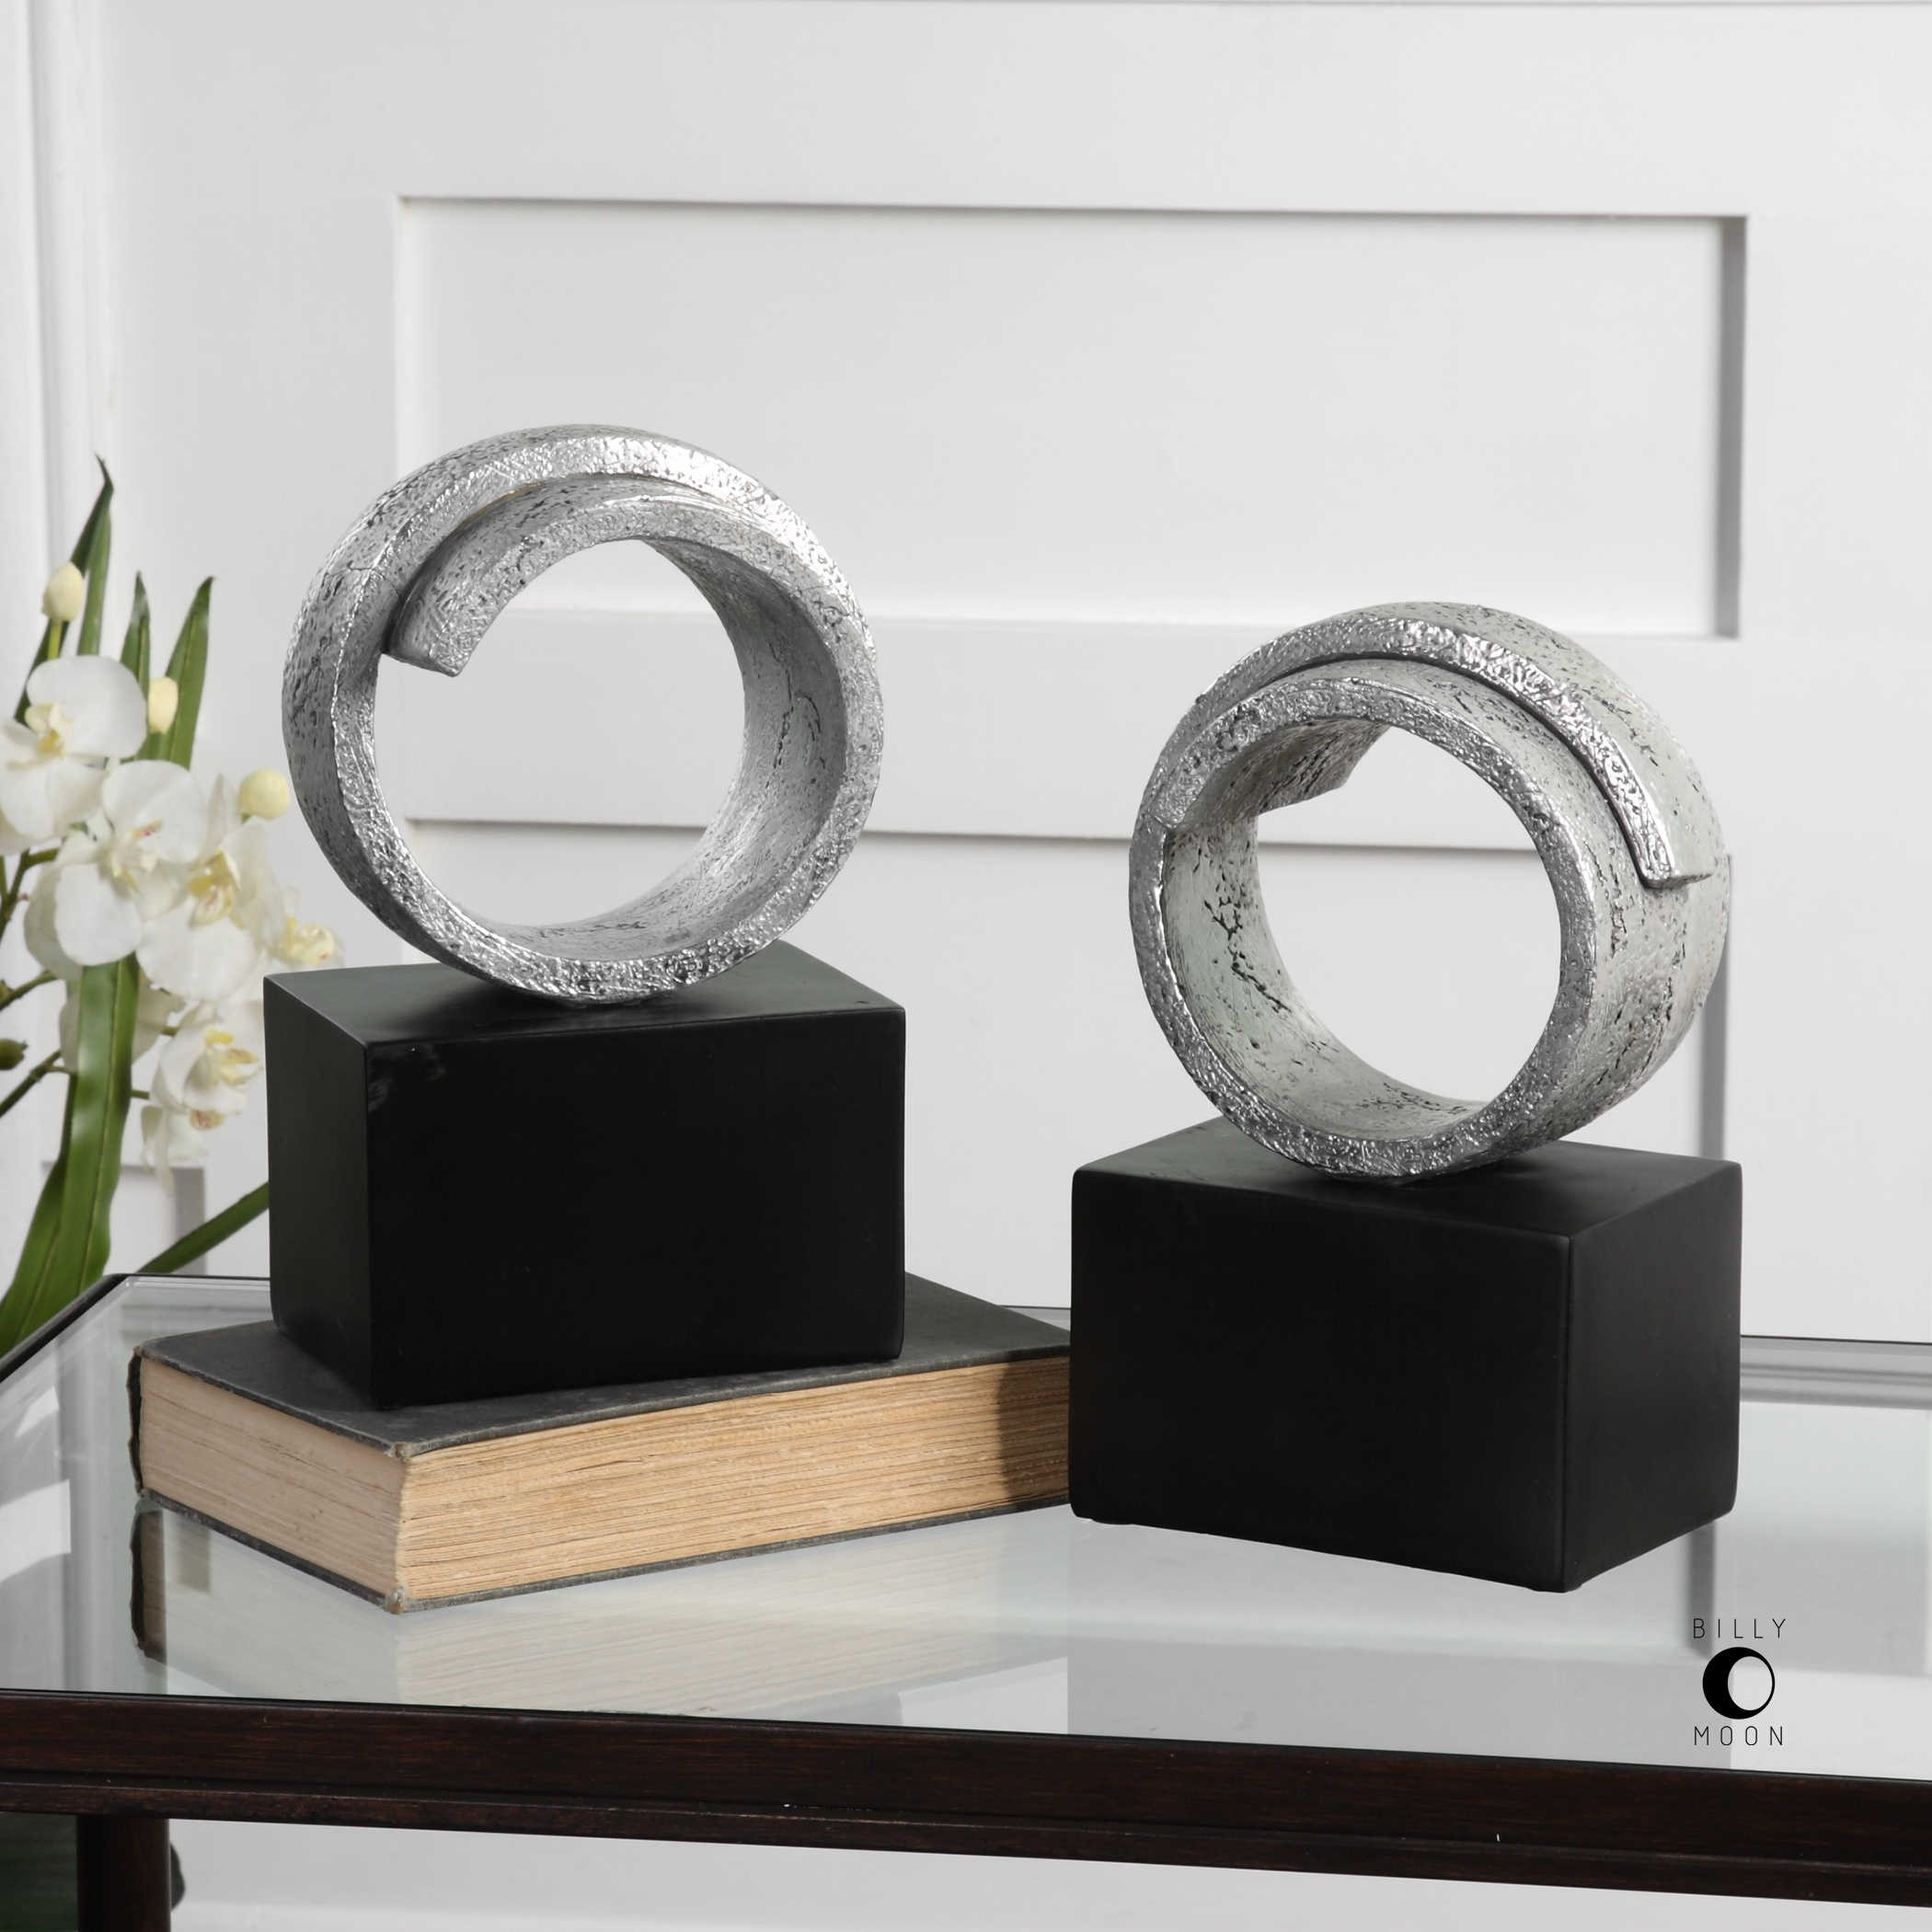 twist-bookends-s2-2